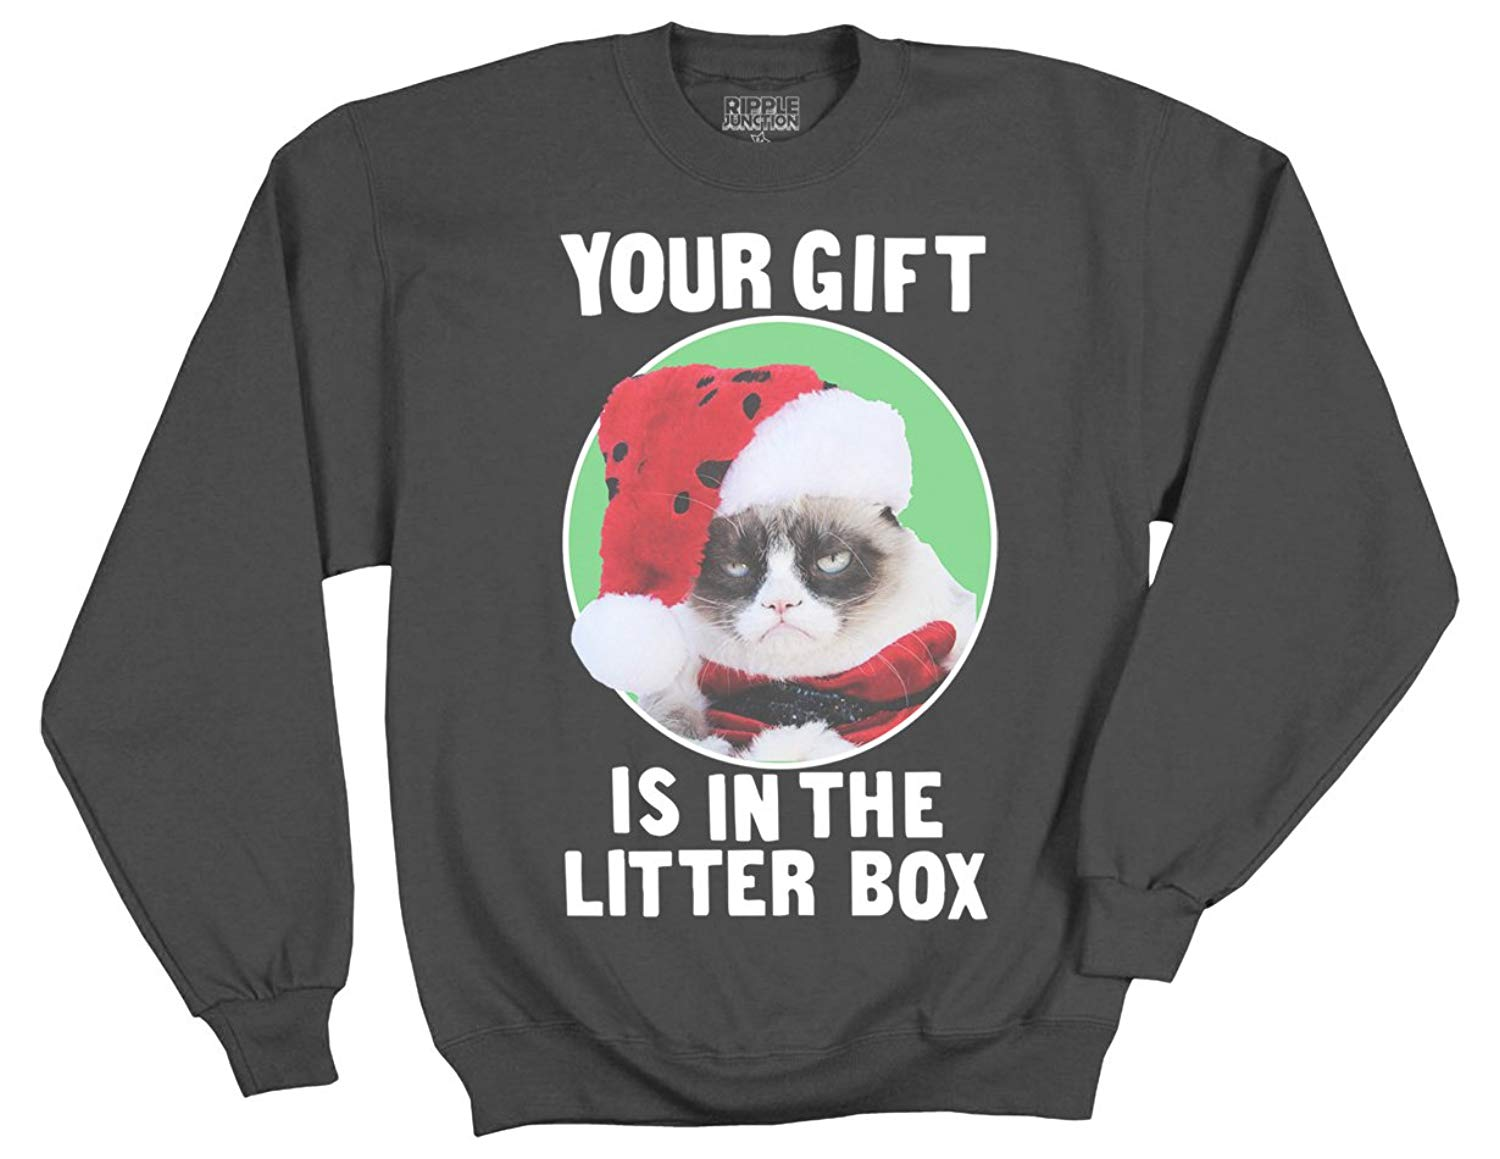 Grumpy Cat Your Gift Is In The Litter Box Adult Shirts